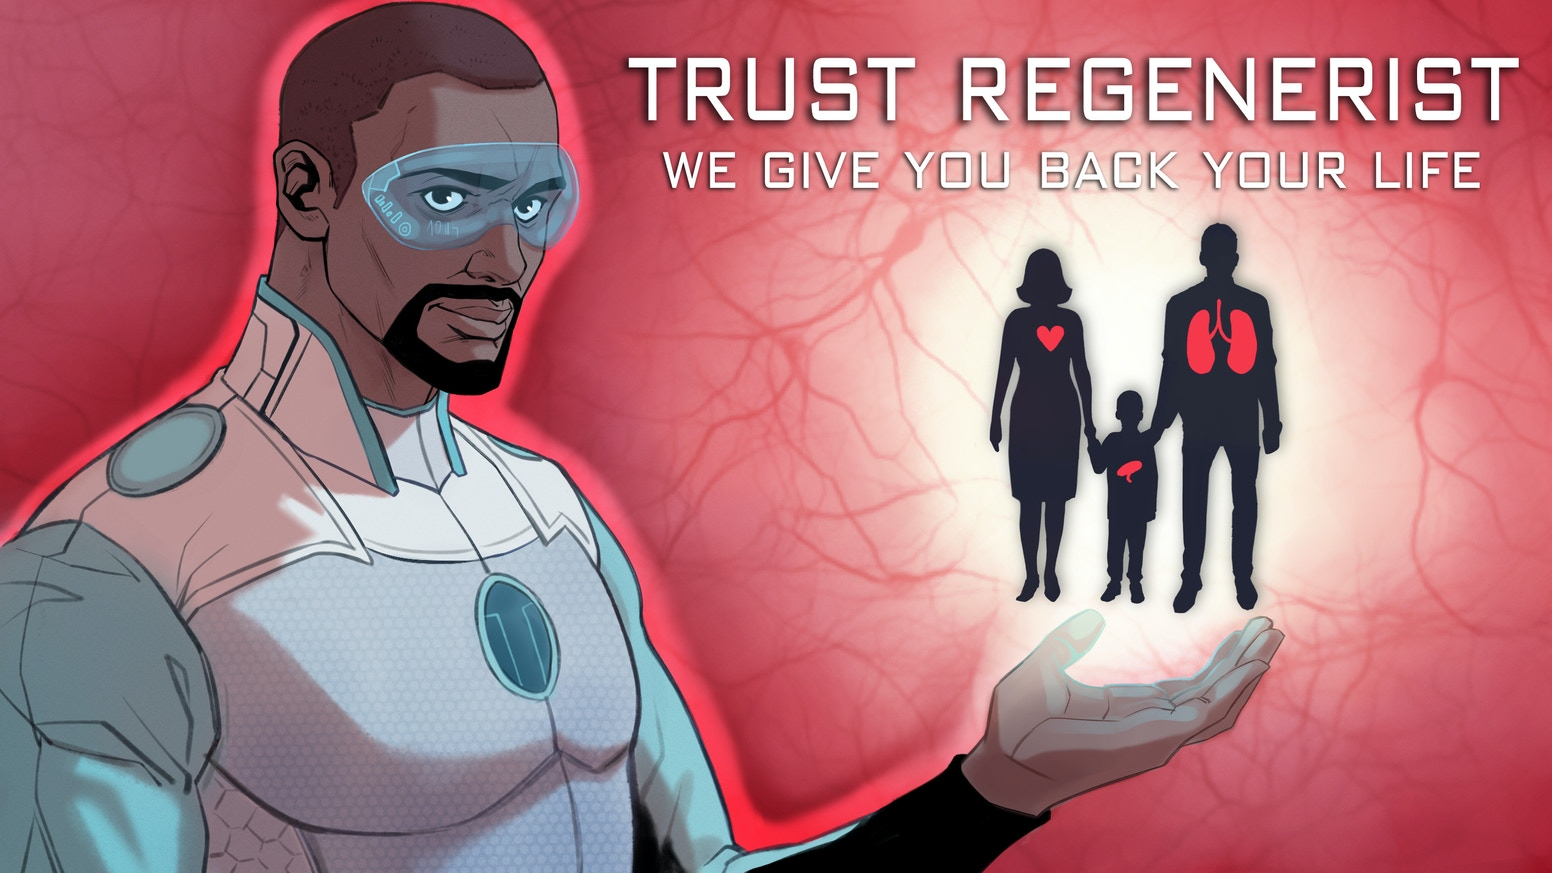 """Set in the future during a pandemic of organ failure, a scientist becomes a victim of his own technology. """"Minority Report"""" meets """"Repo Men."""" 56-page trade paperback collection. #RecognizeKSRU"""